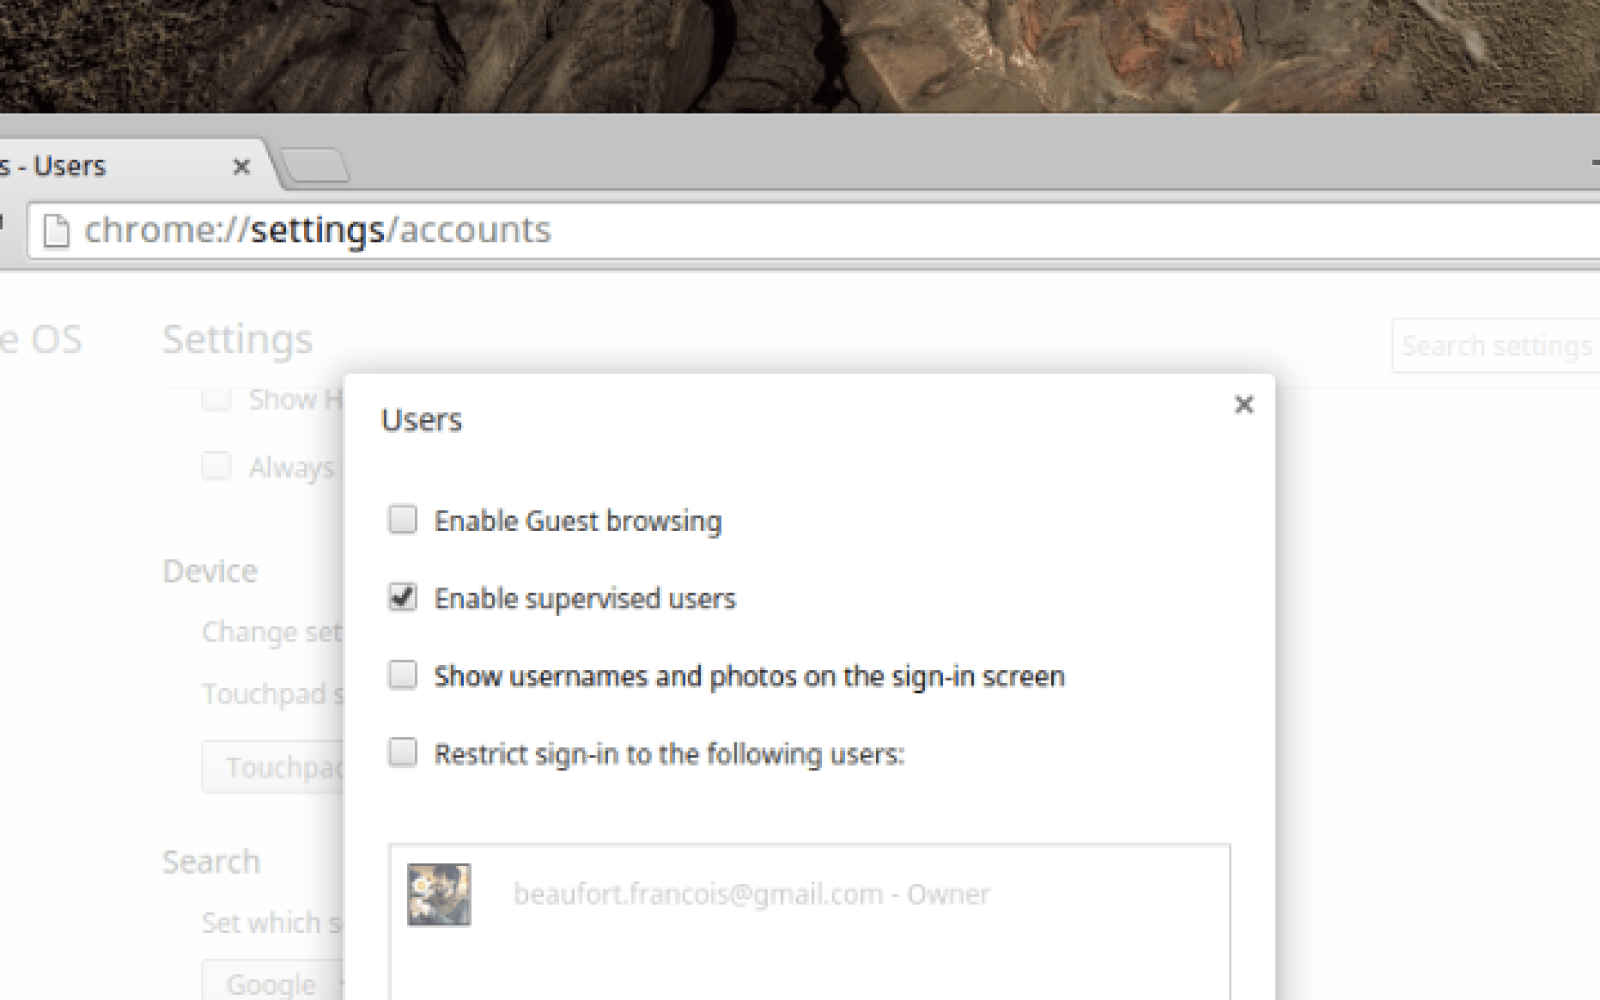 Chrome OS now supports supervised user access